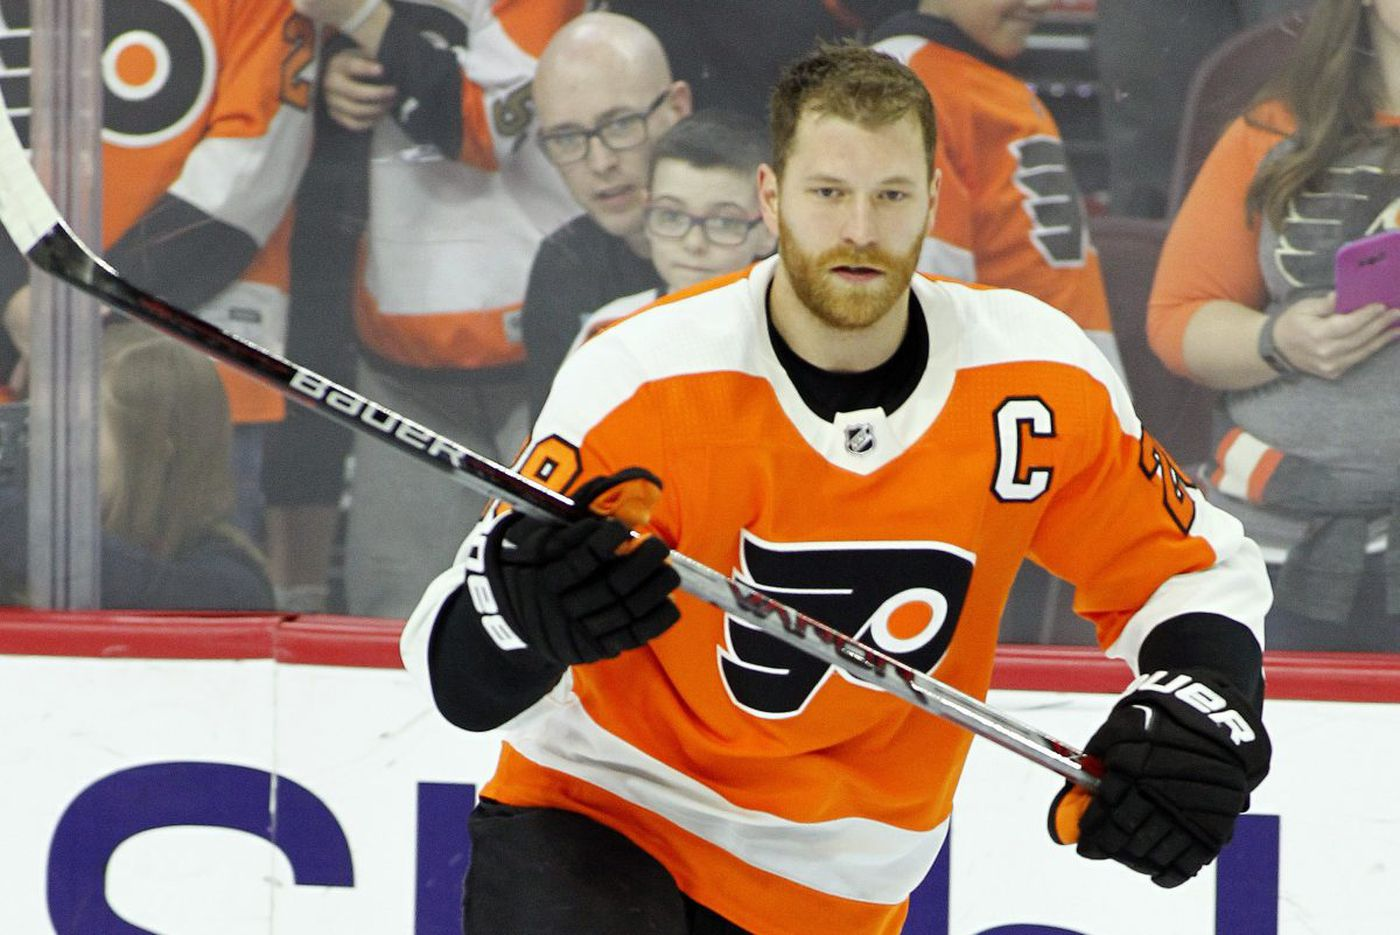 Flyers need to improve (greatly) on home ice down stretch of playoff race